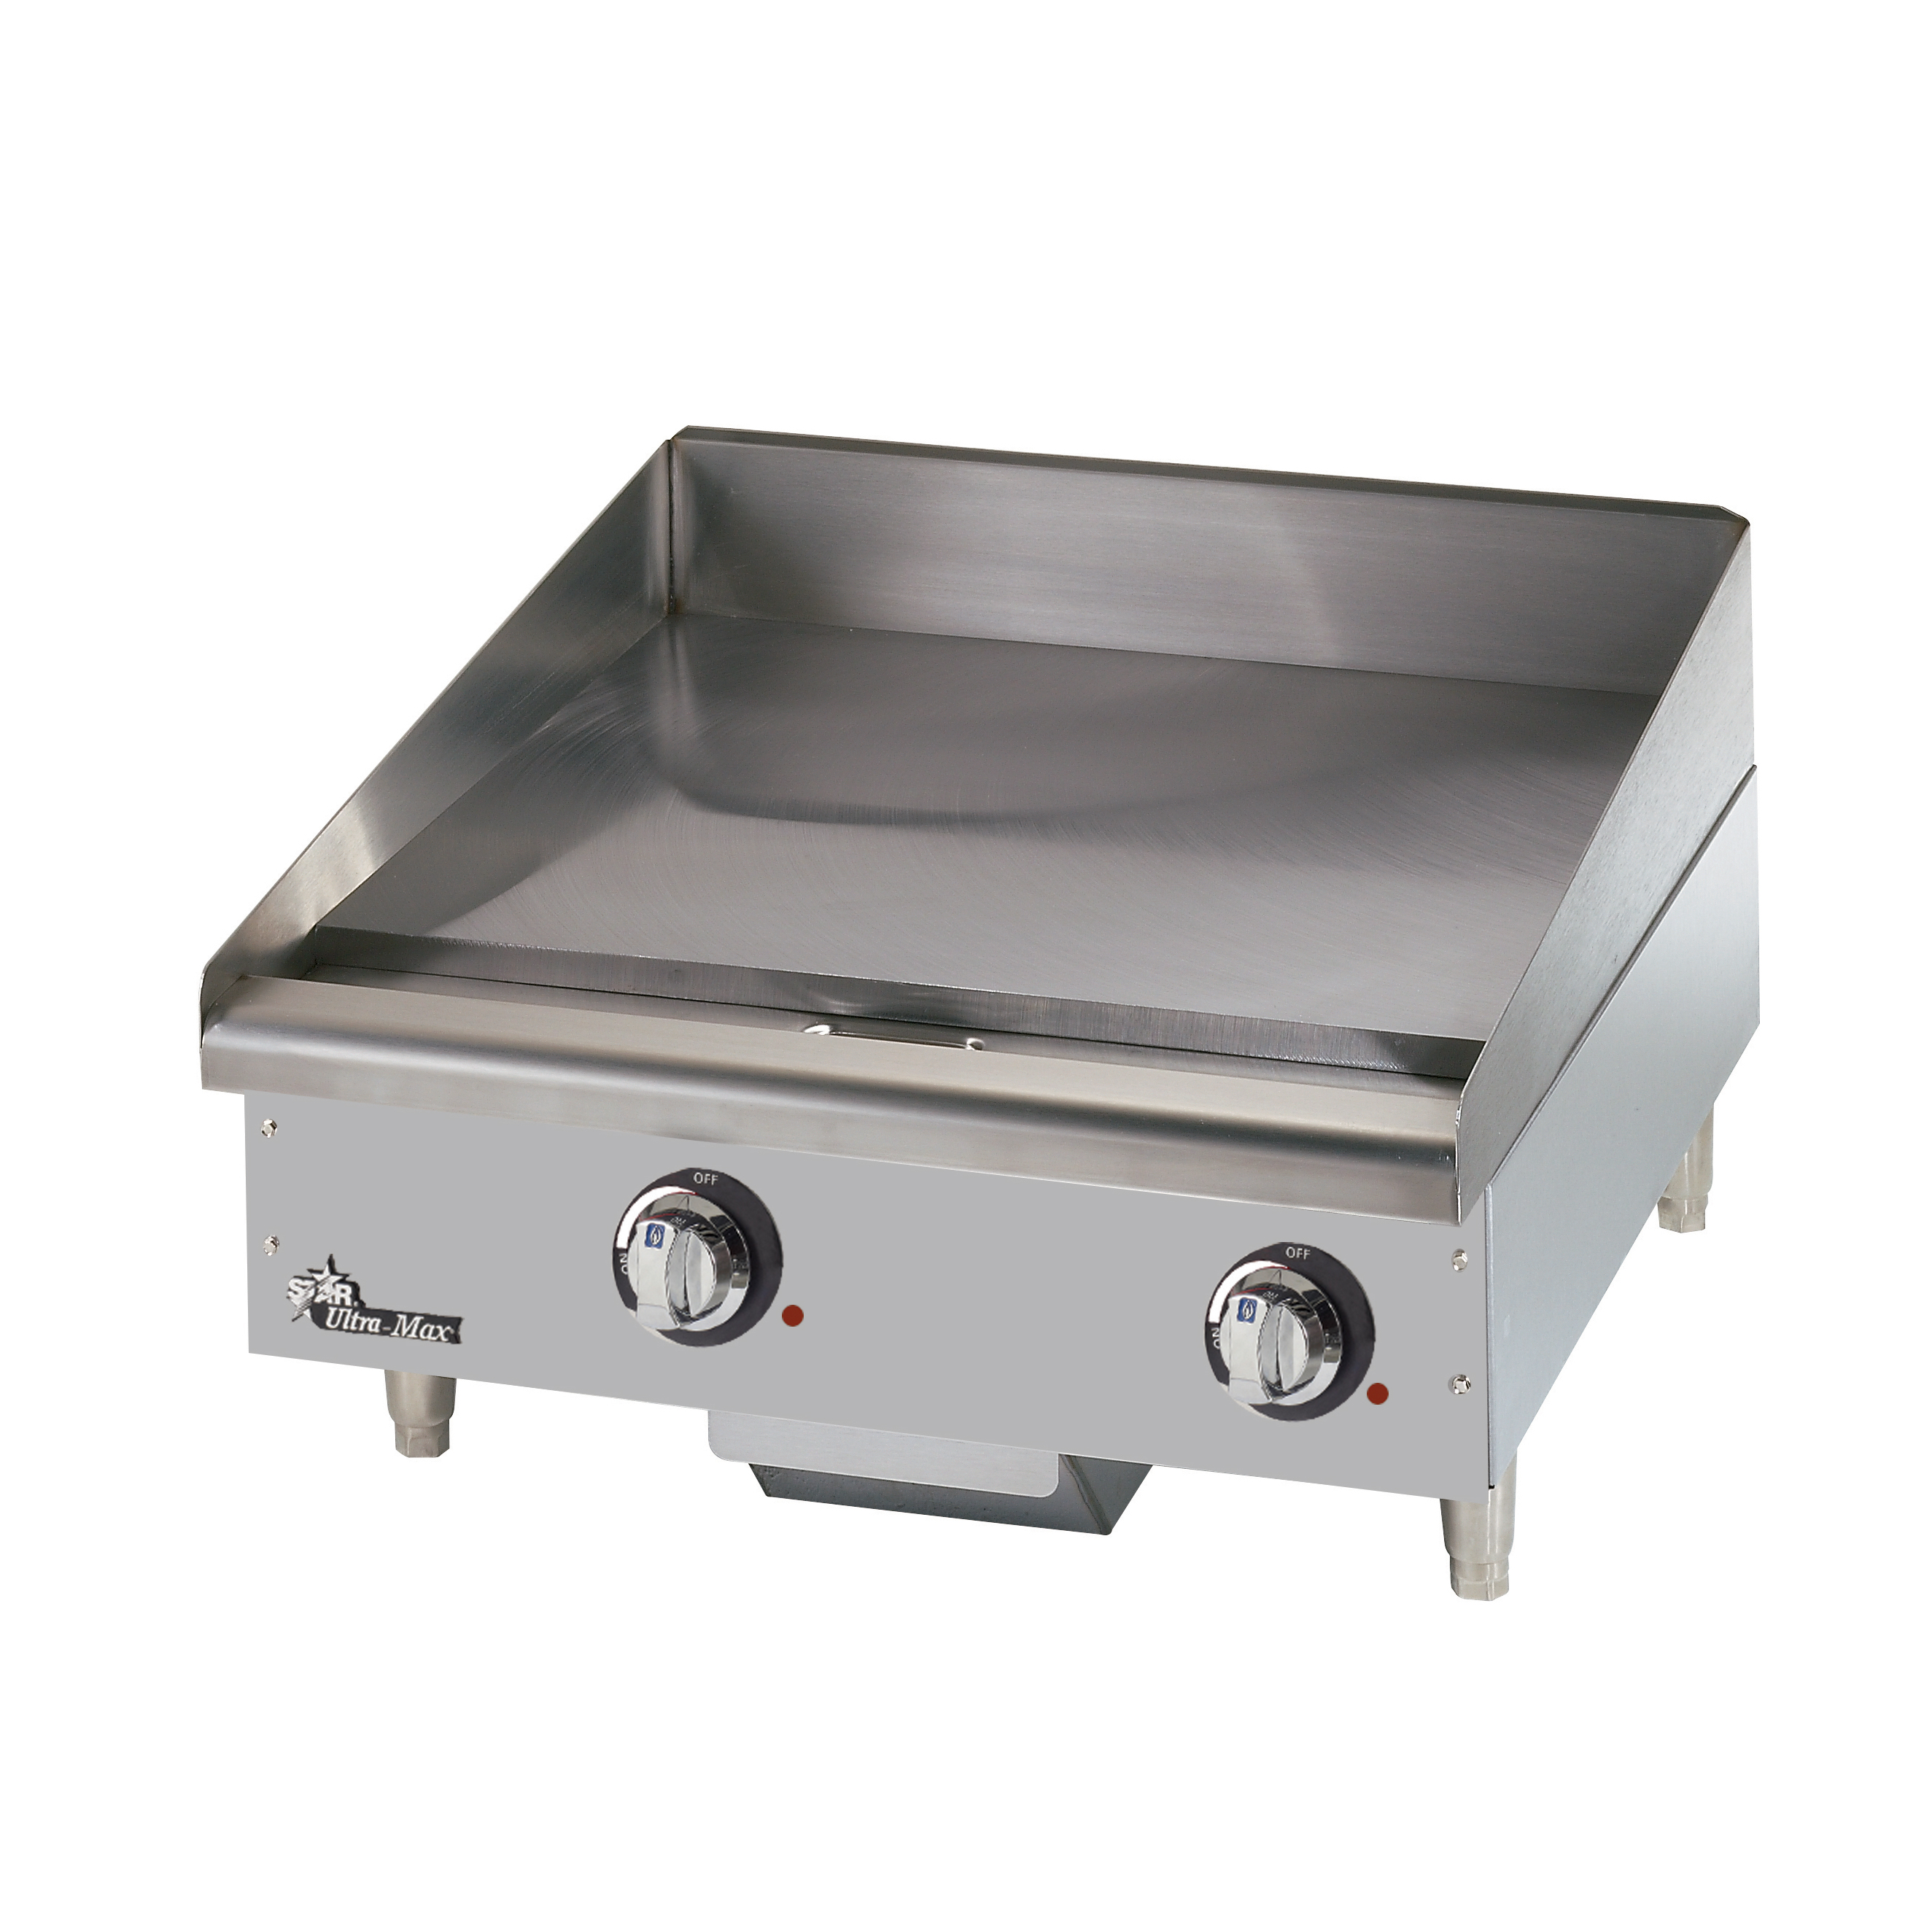 Star 724TA griddle, electric, countertop